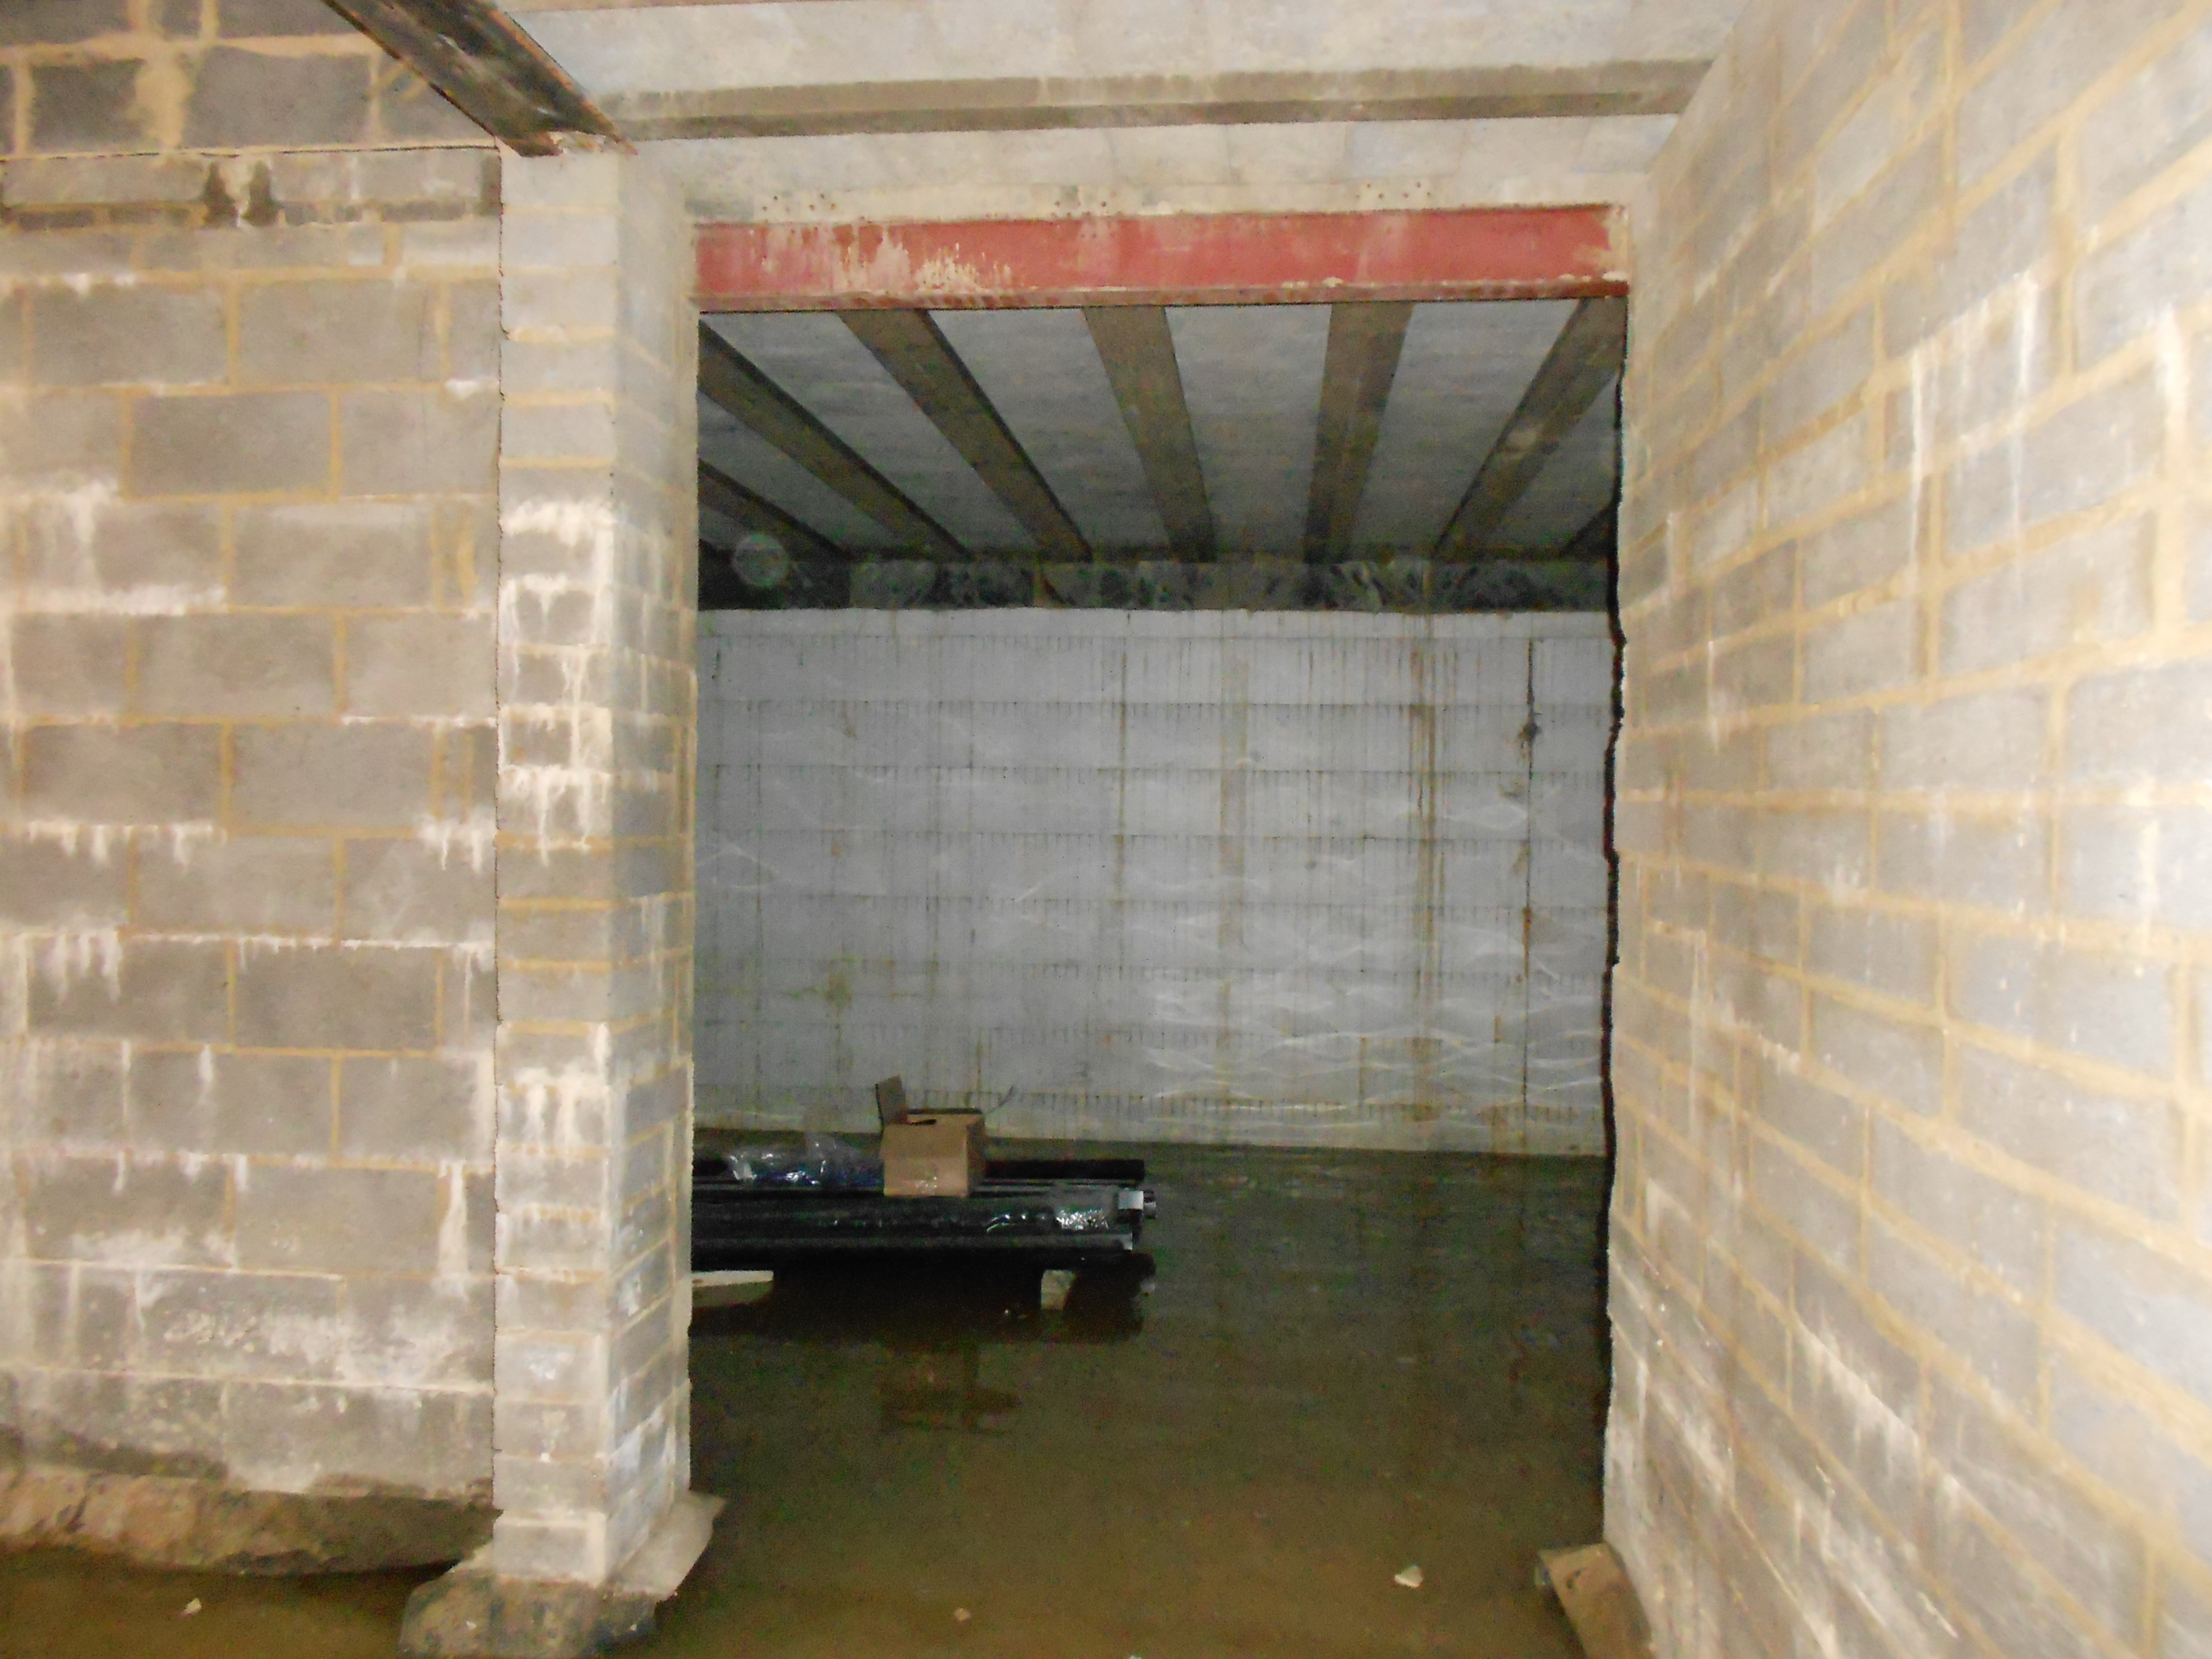 Work on site halted waiting for basement to be waterproofed